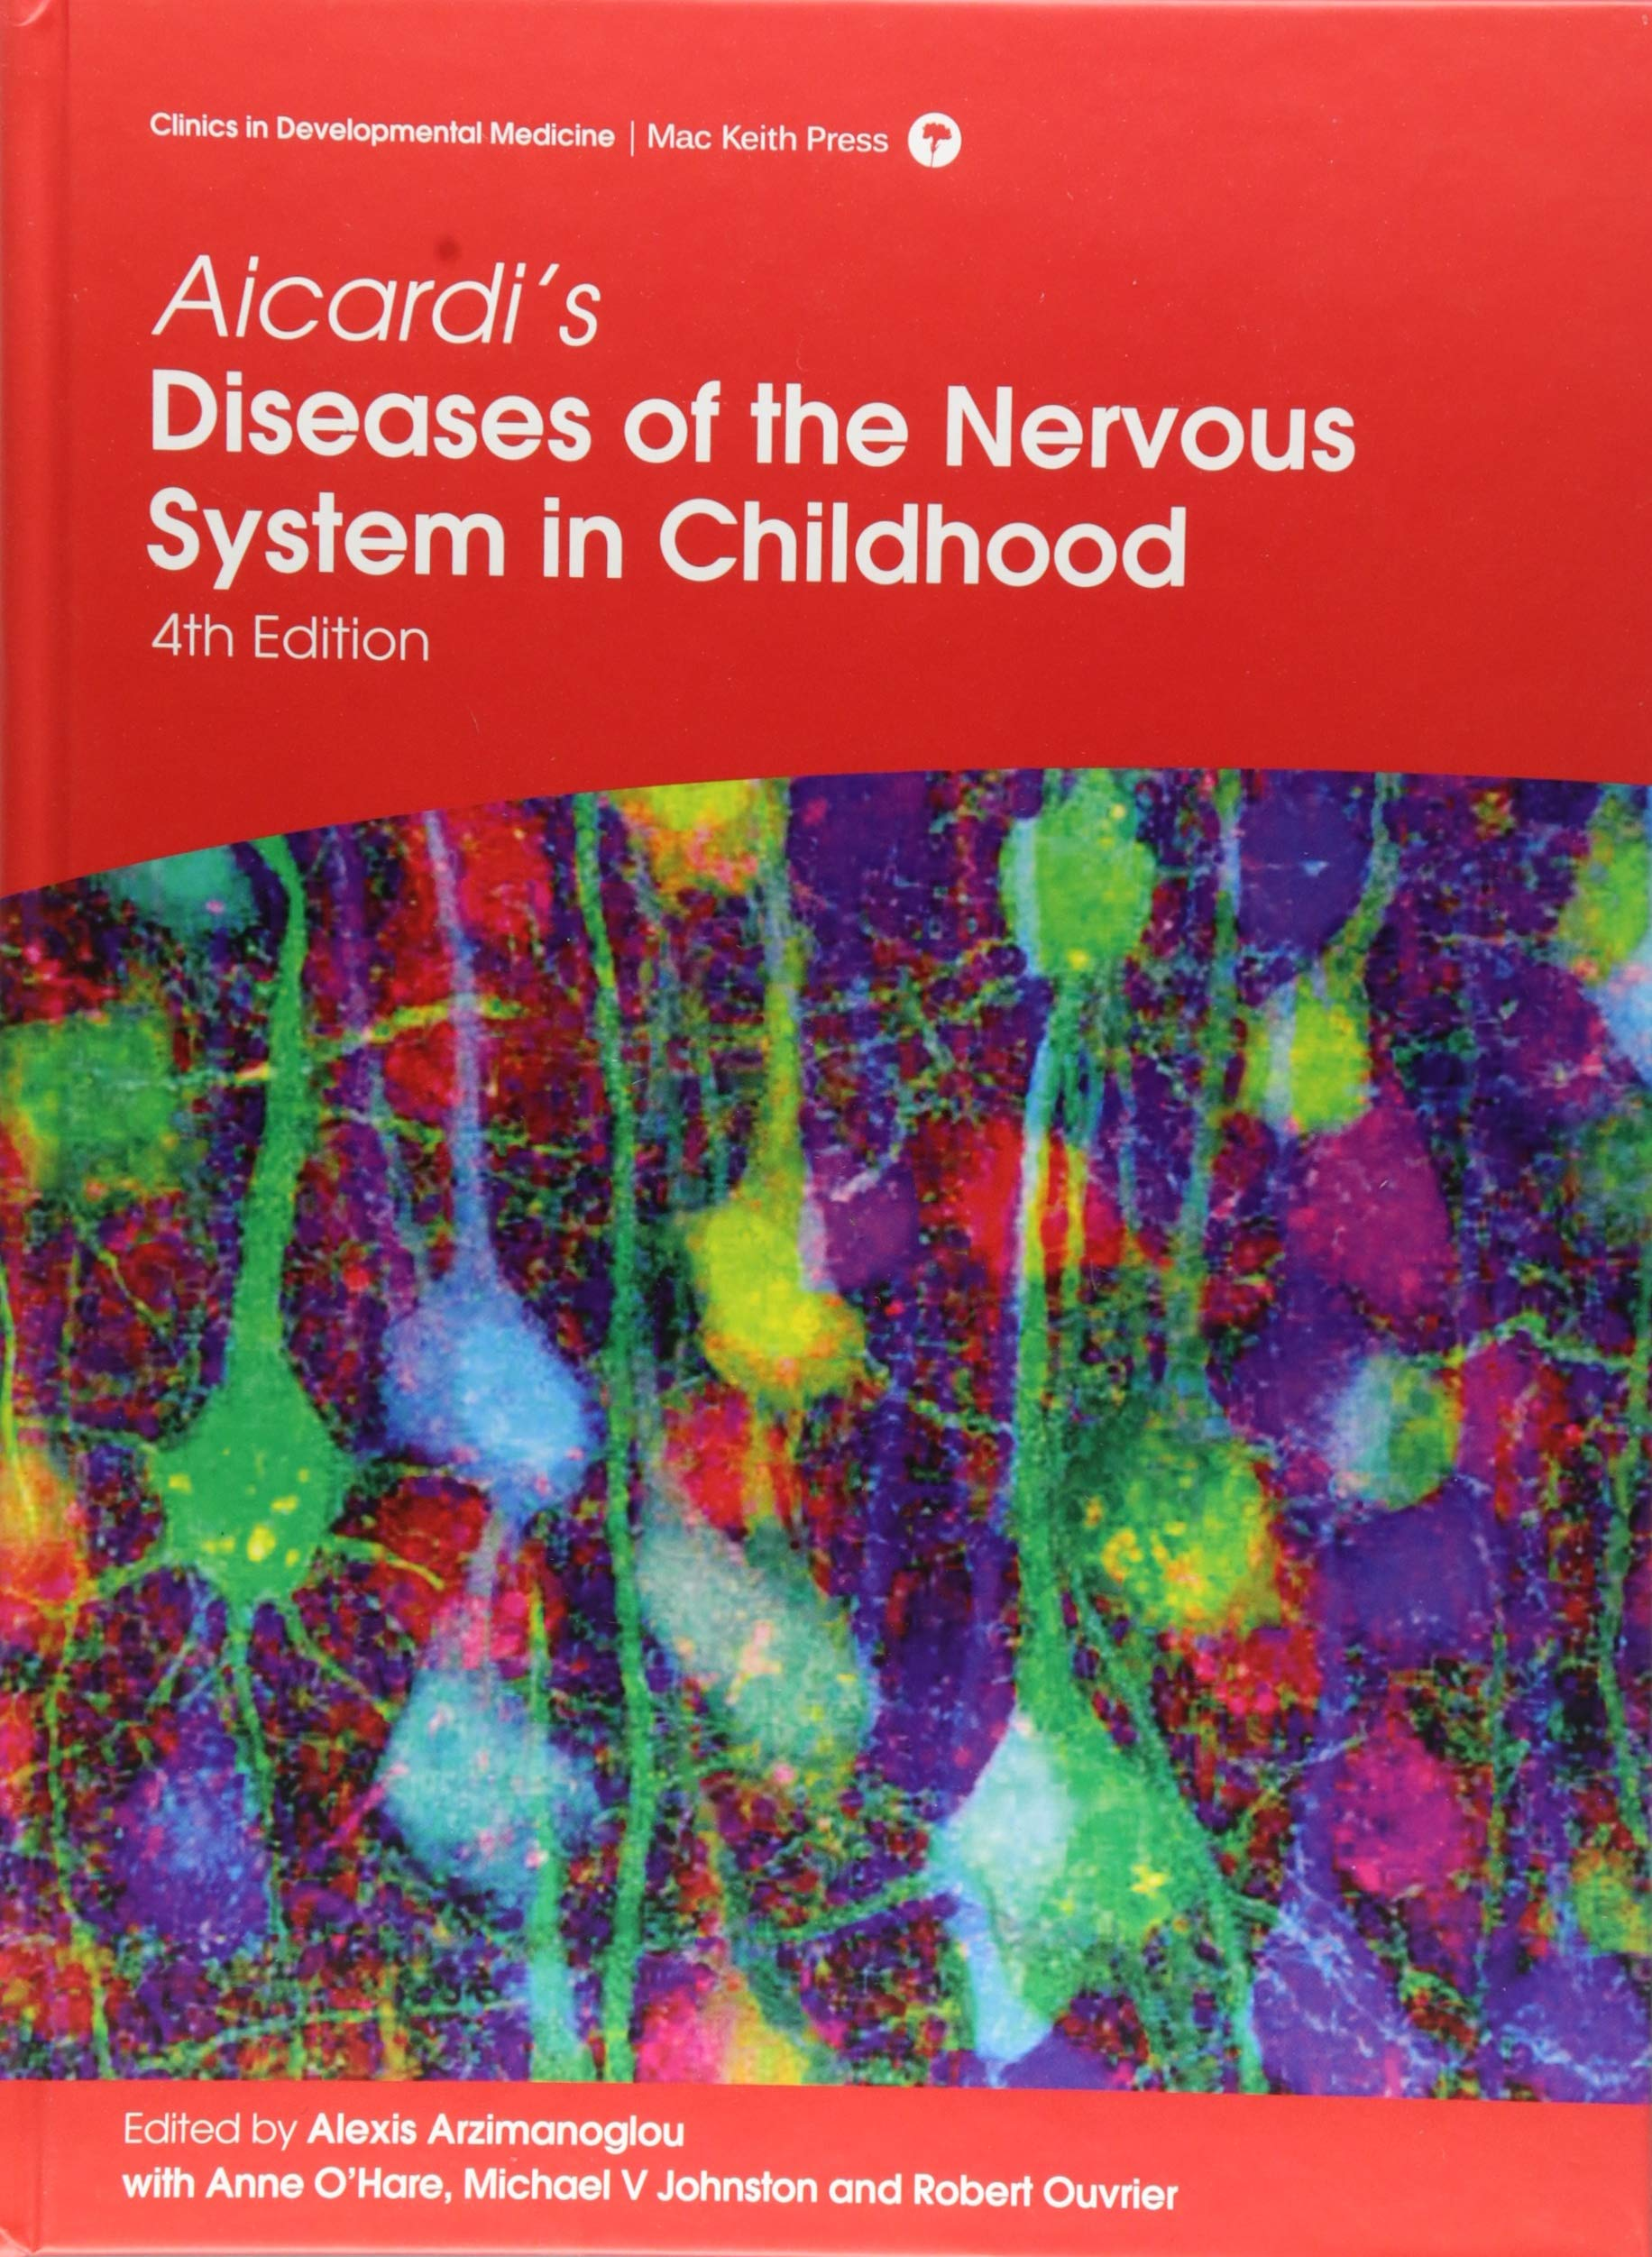 Image OfAicardi's Diseases Of The Nervous System In Childhood (Clinics In Developmental Medicine)